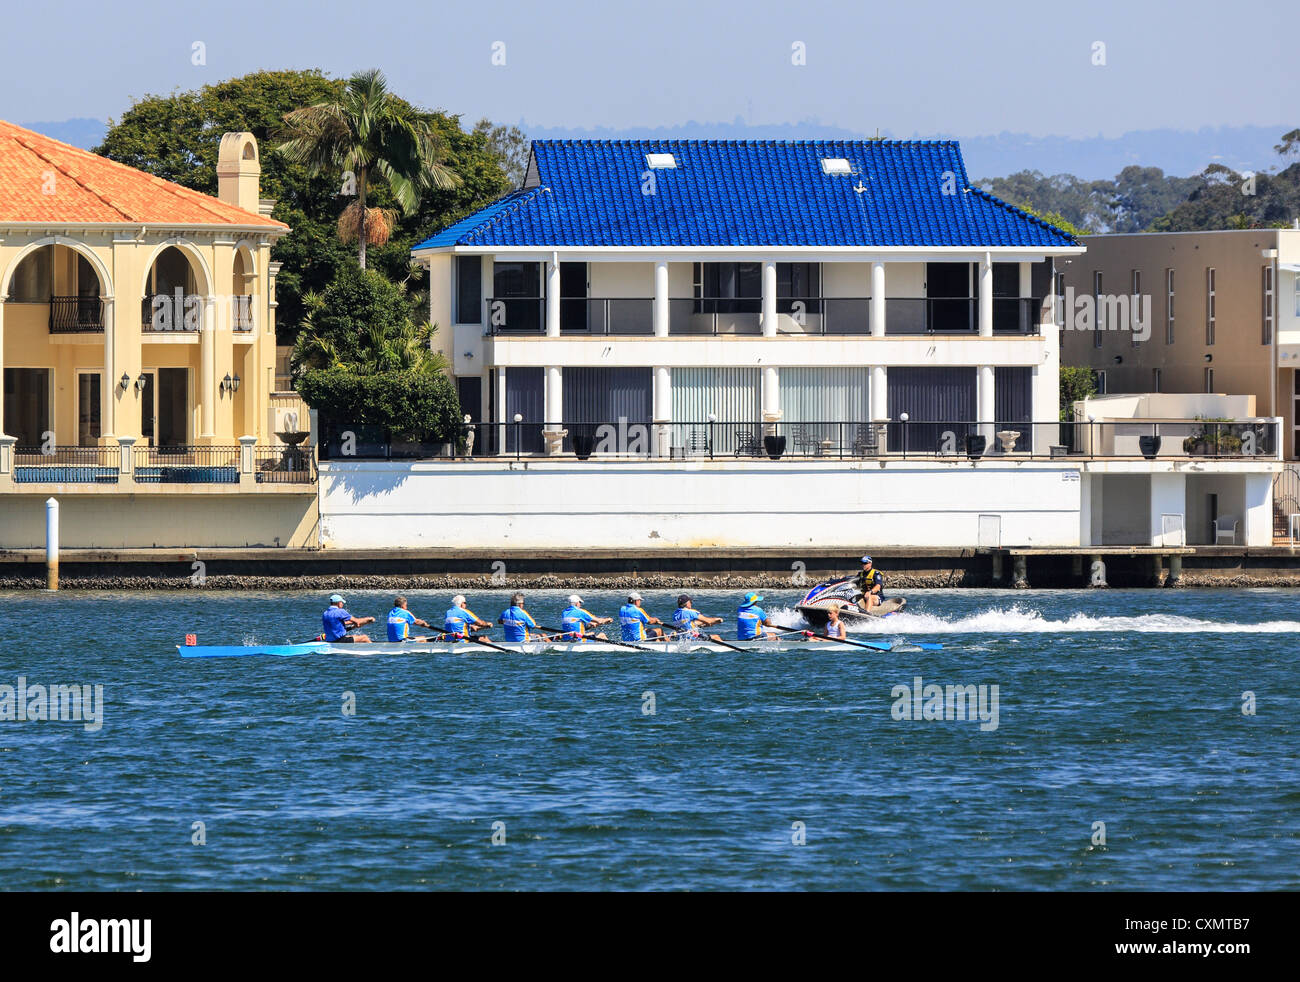 Water police clear the course at University river regatta rowing for trophies Surfers Paradise Queensland - Stock Image